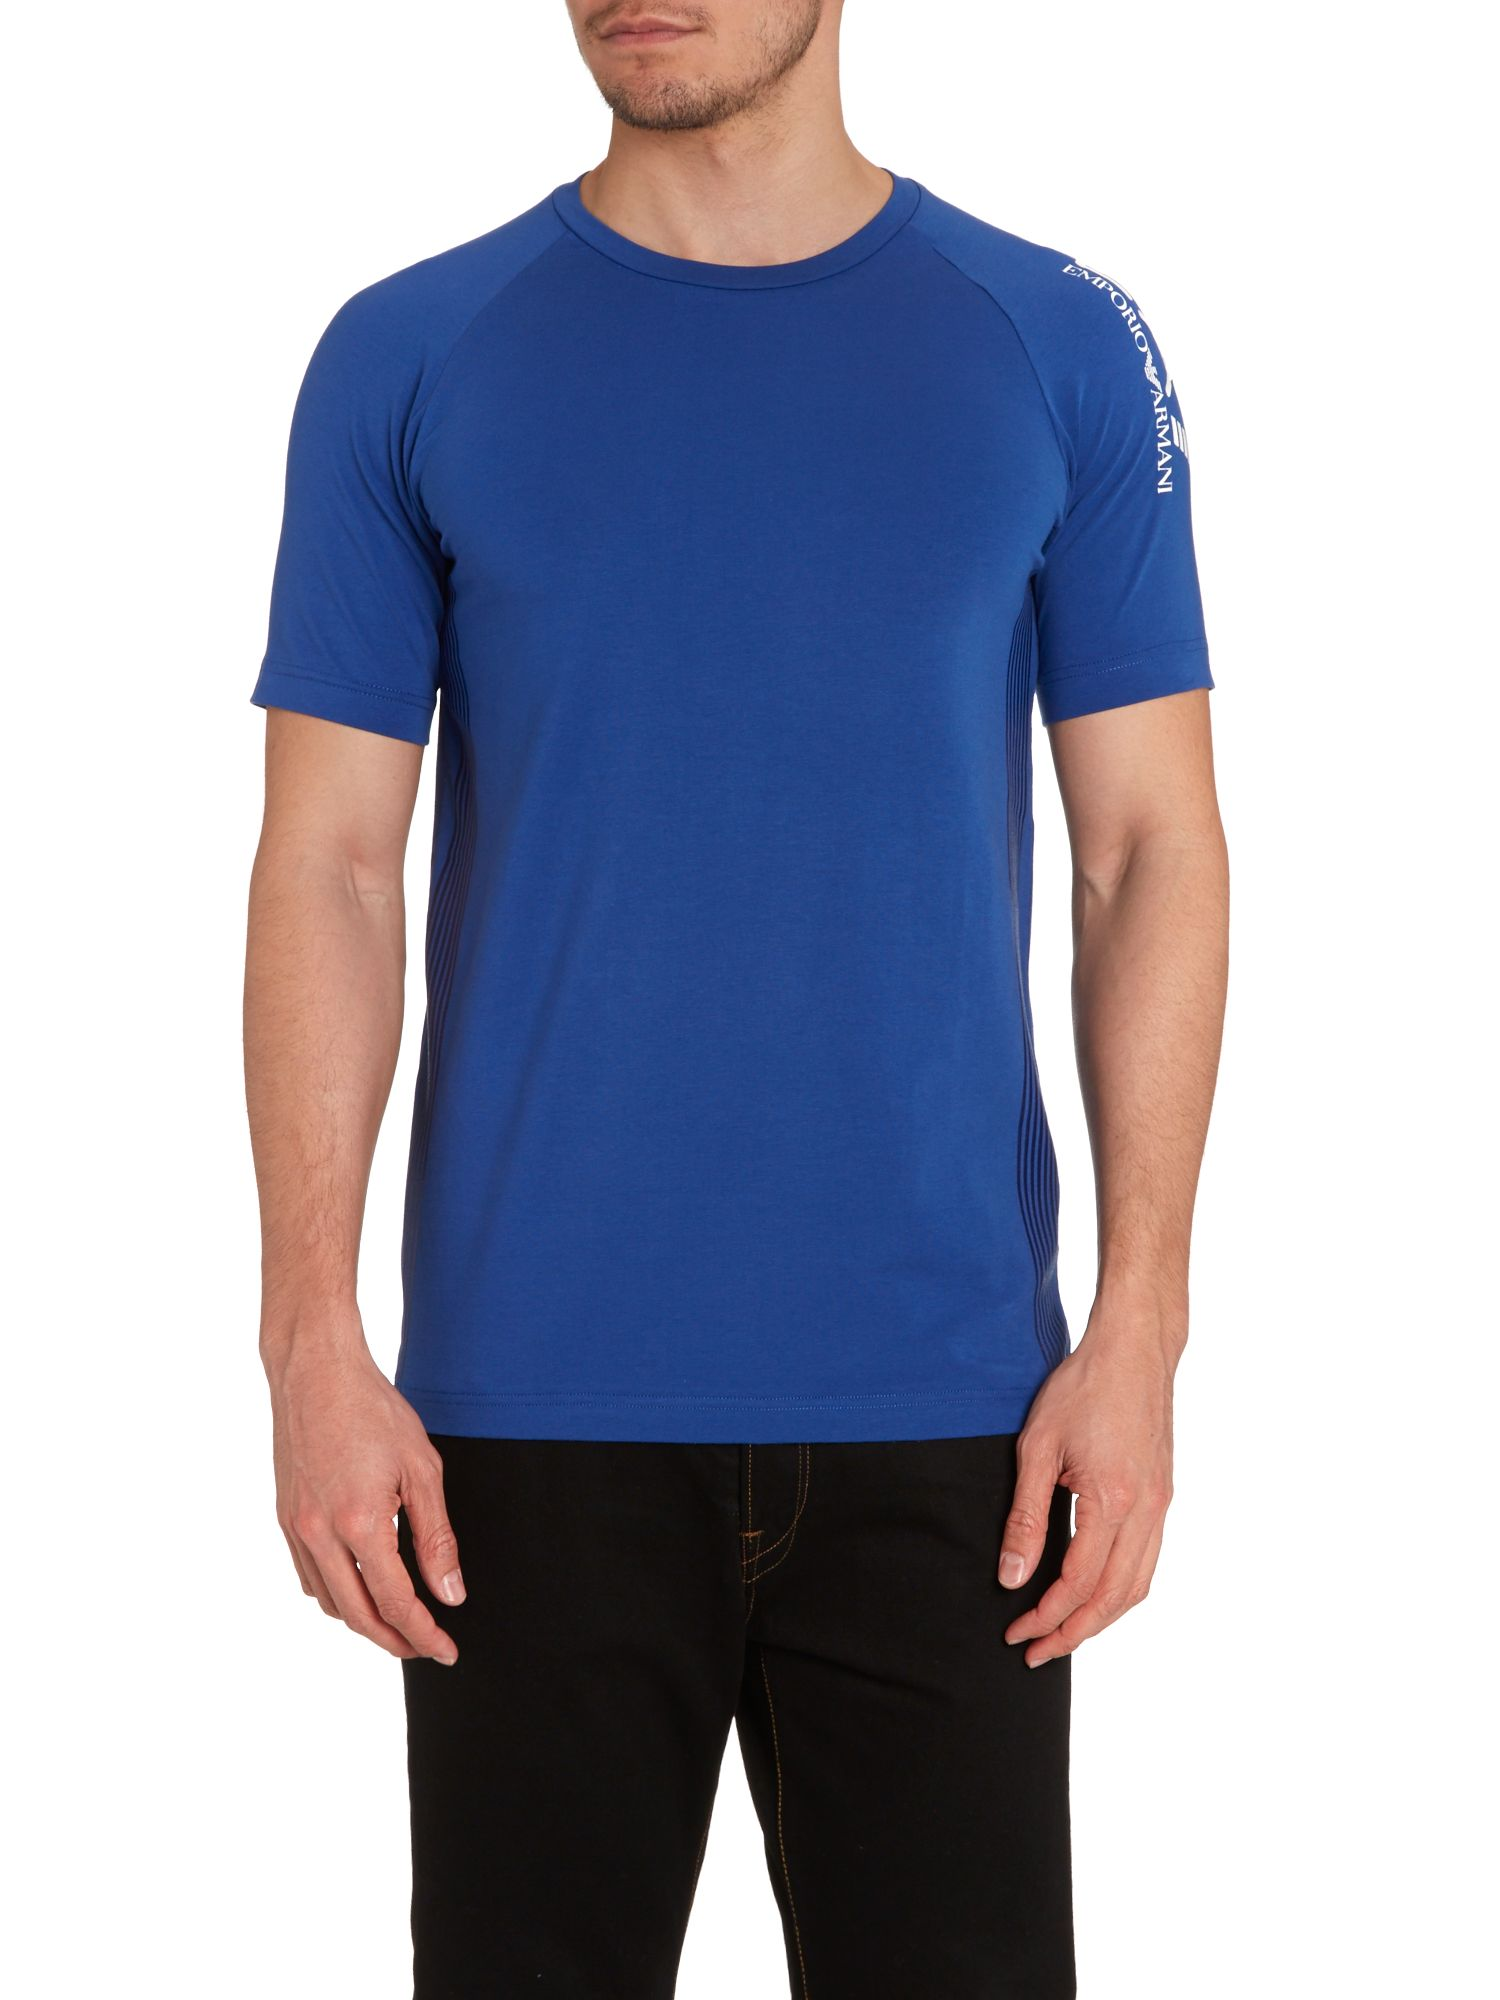 Crew neck train core arm logo t-shirt